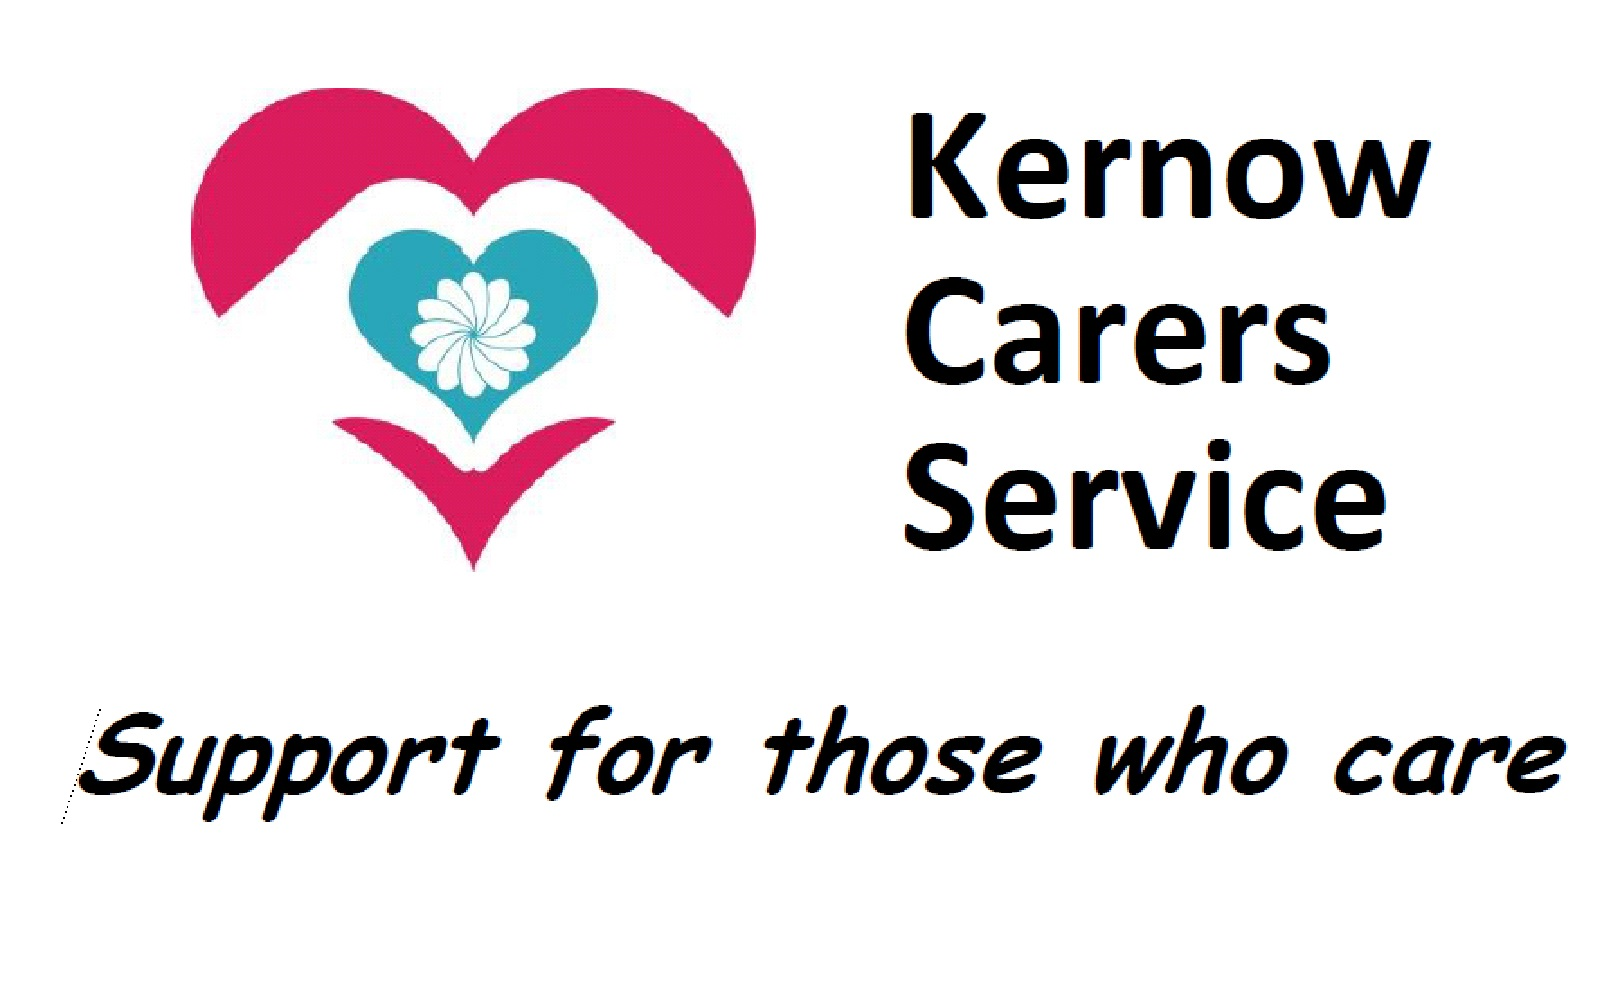 Camborne & Redruth Carers Forum – Next Meeting Tuesday 11th September 2018